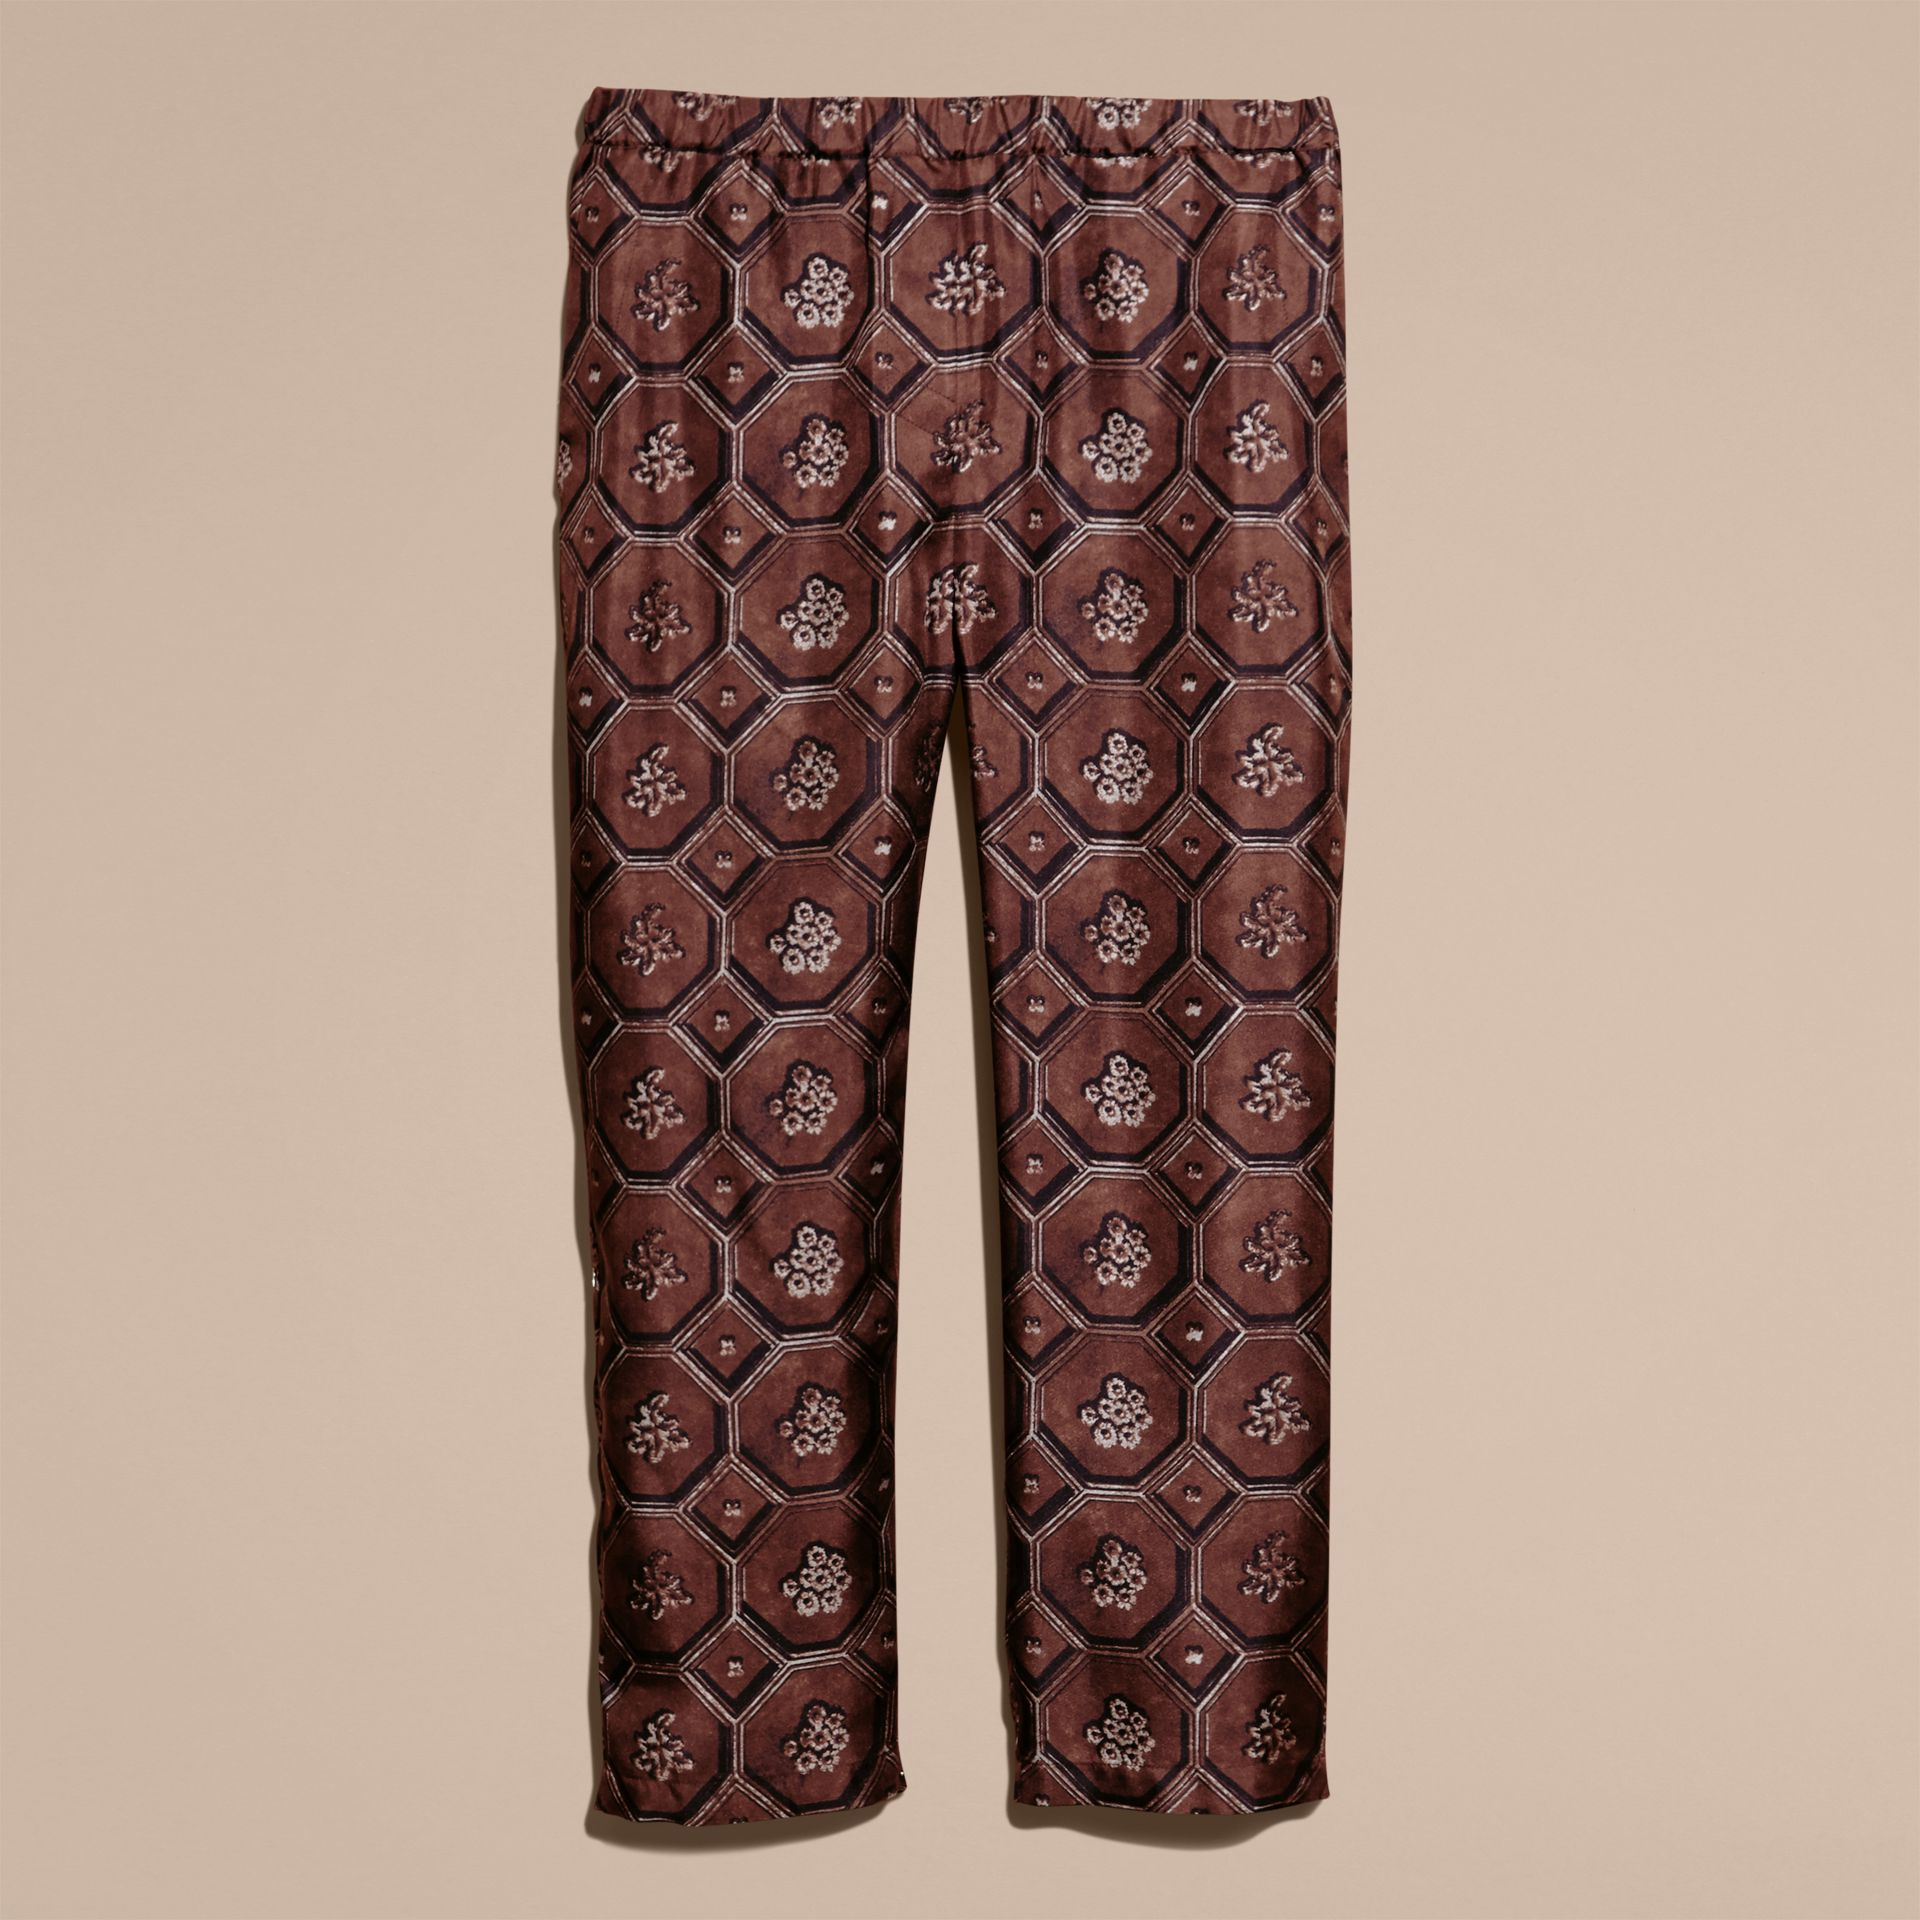 Geometric Wallpaper Print Silk Twill Cropped Pyjama-style Trousers Deep Claret - gallery image 4